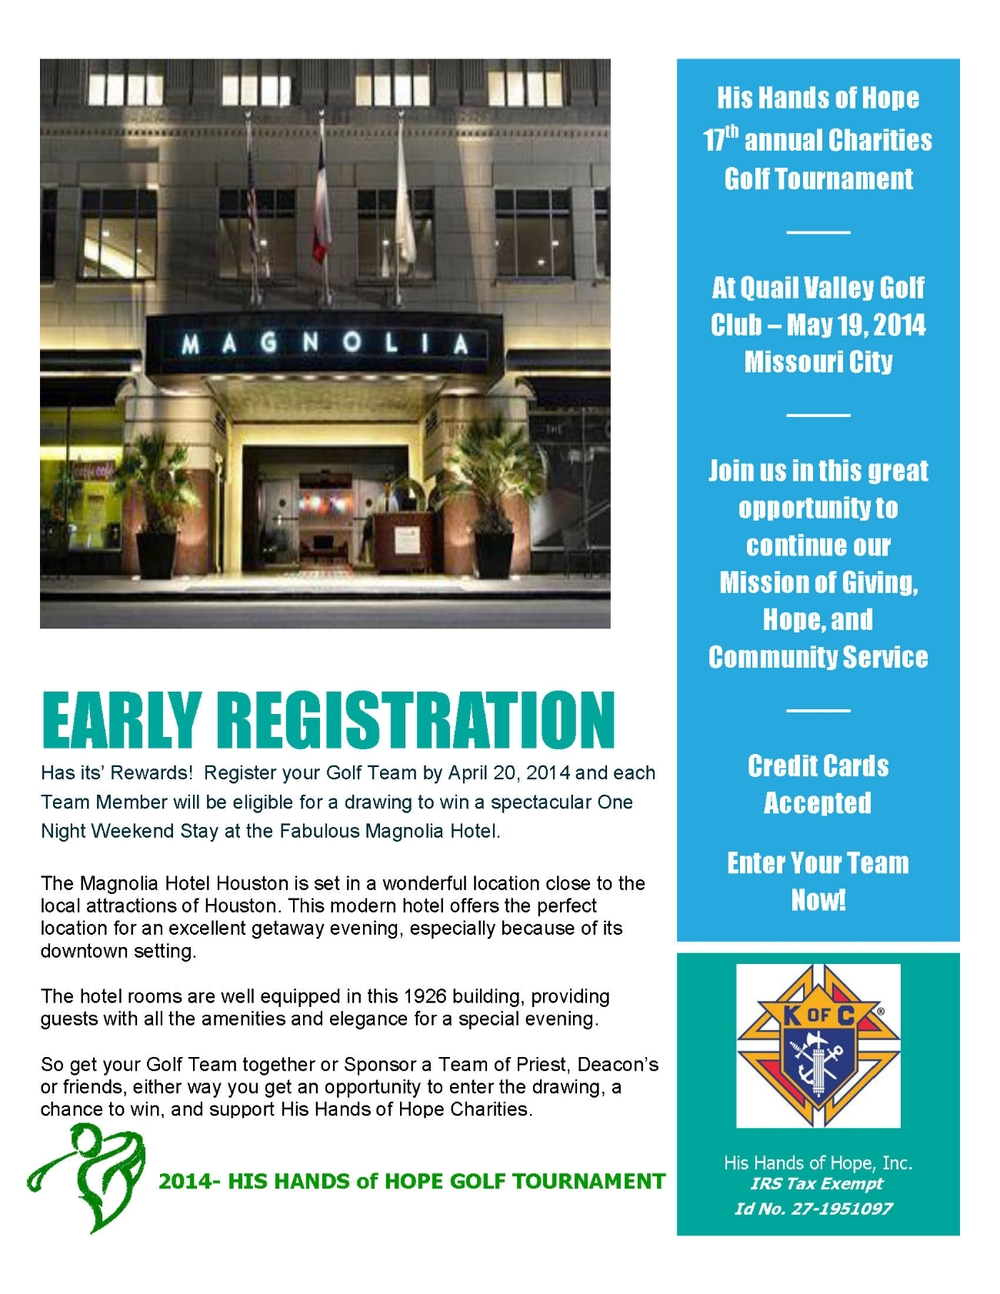 Register Before Easter Sunday (April 20, 2014)